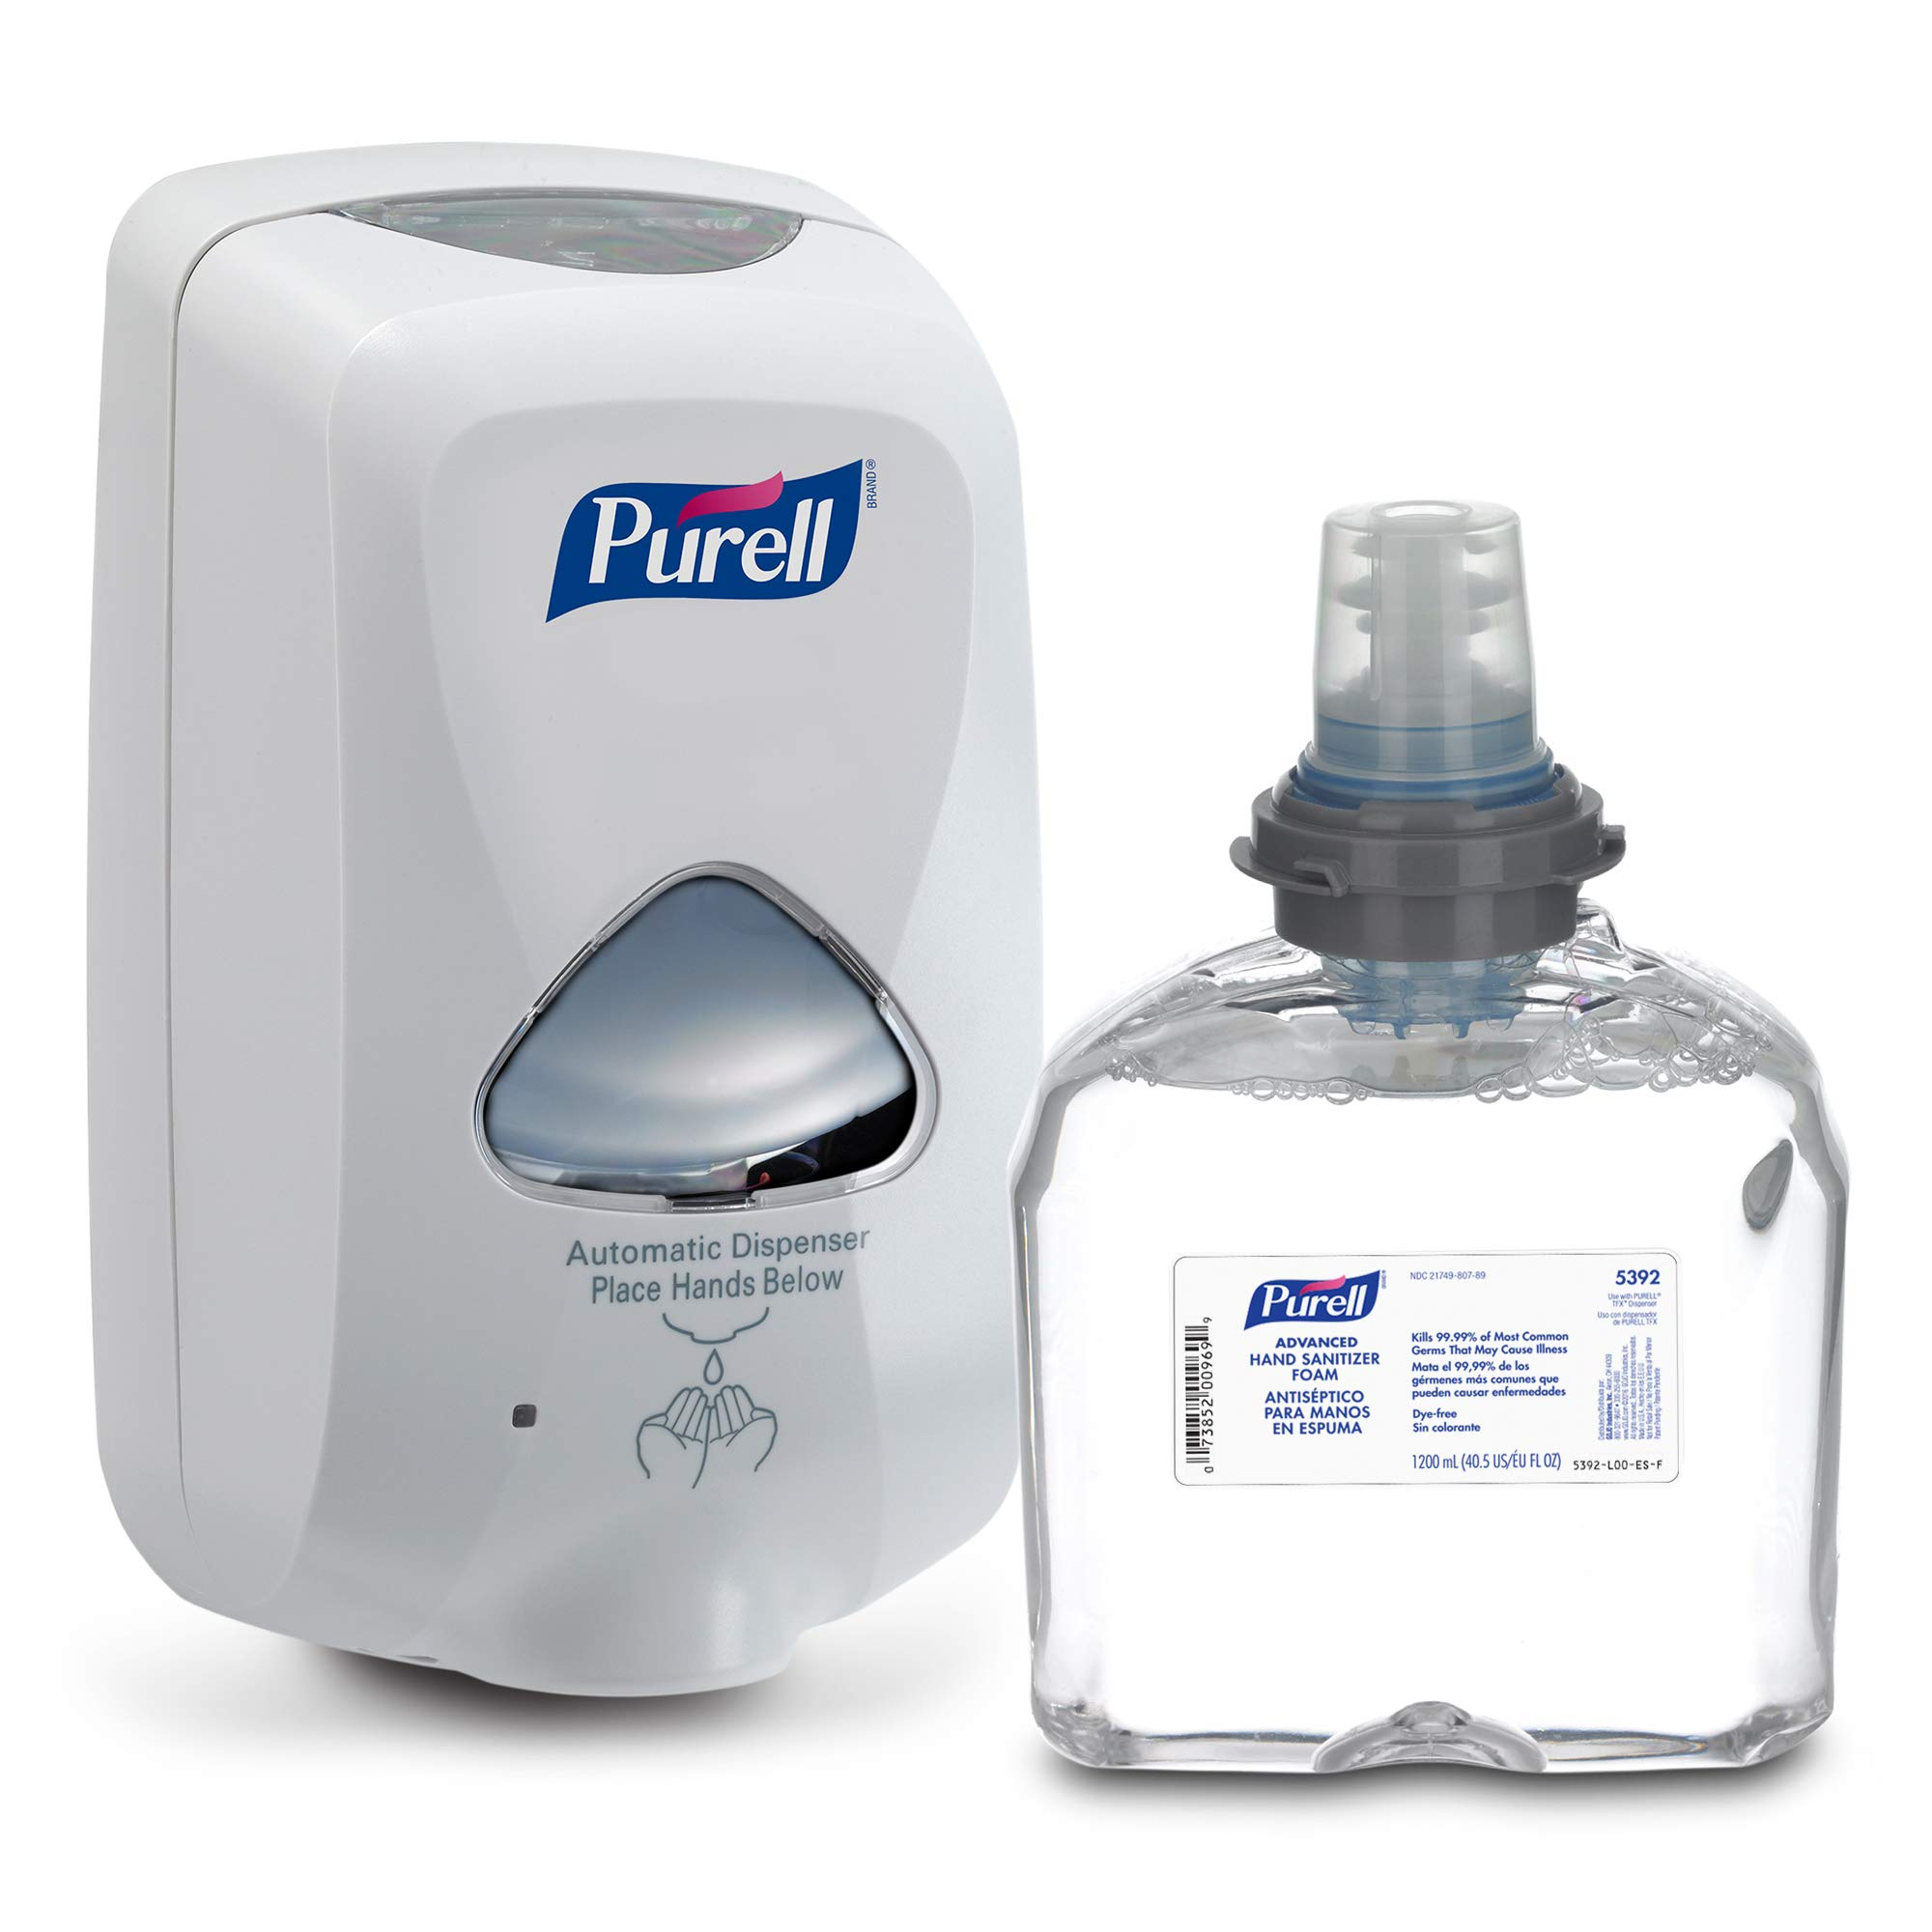 PURELL Advanced Hand Sanitizer Foam TFX Starter Kit, 1 - 1200 mL Foam Hand Sanitizer Refill + 1 - PURELL TFX Dove Grey Touch-Free Dispenser - 5392-D1 by Purell